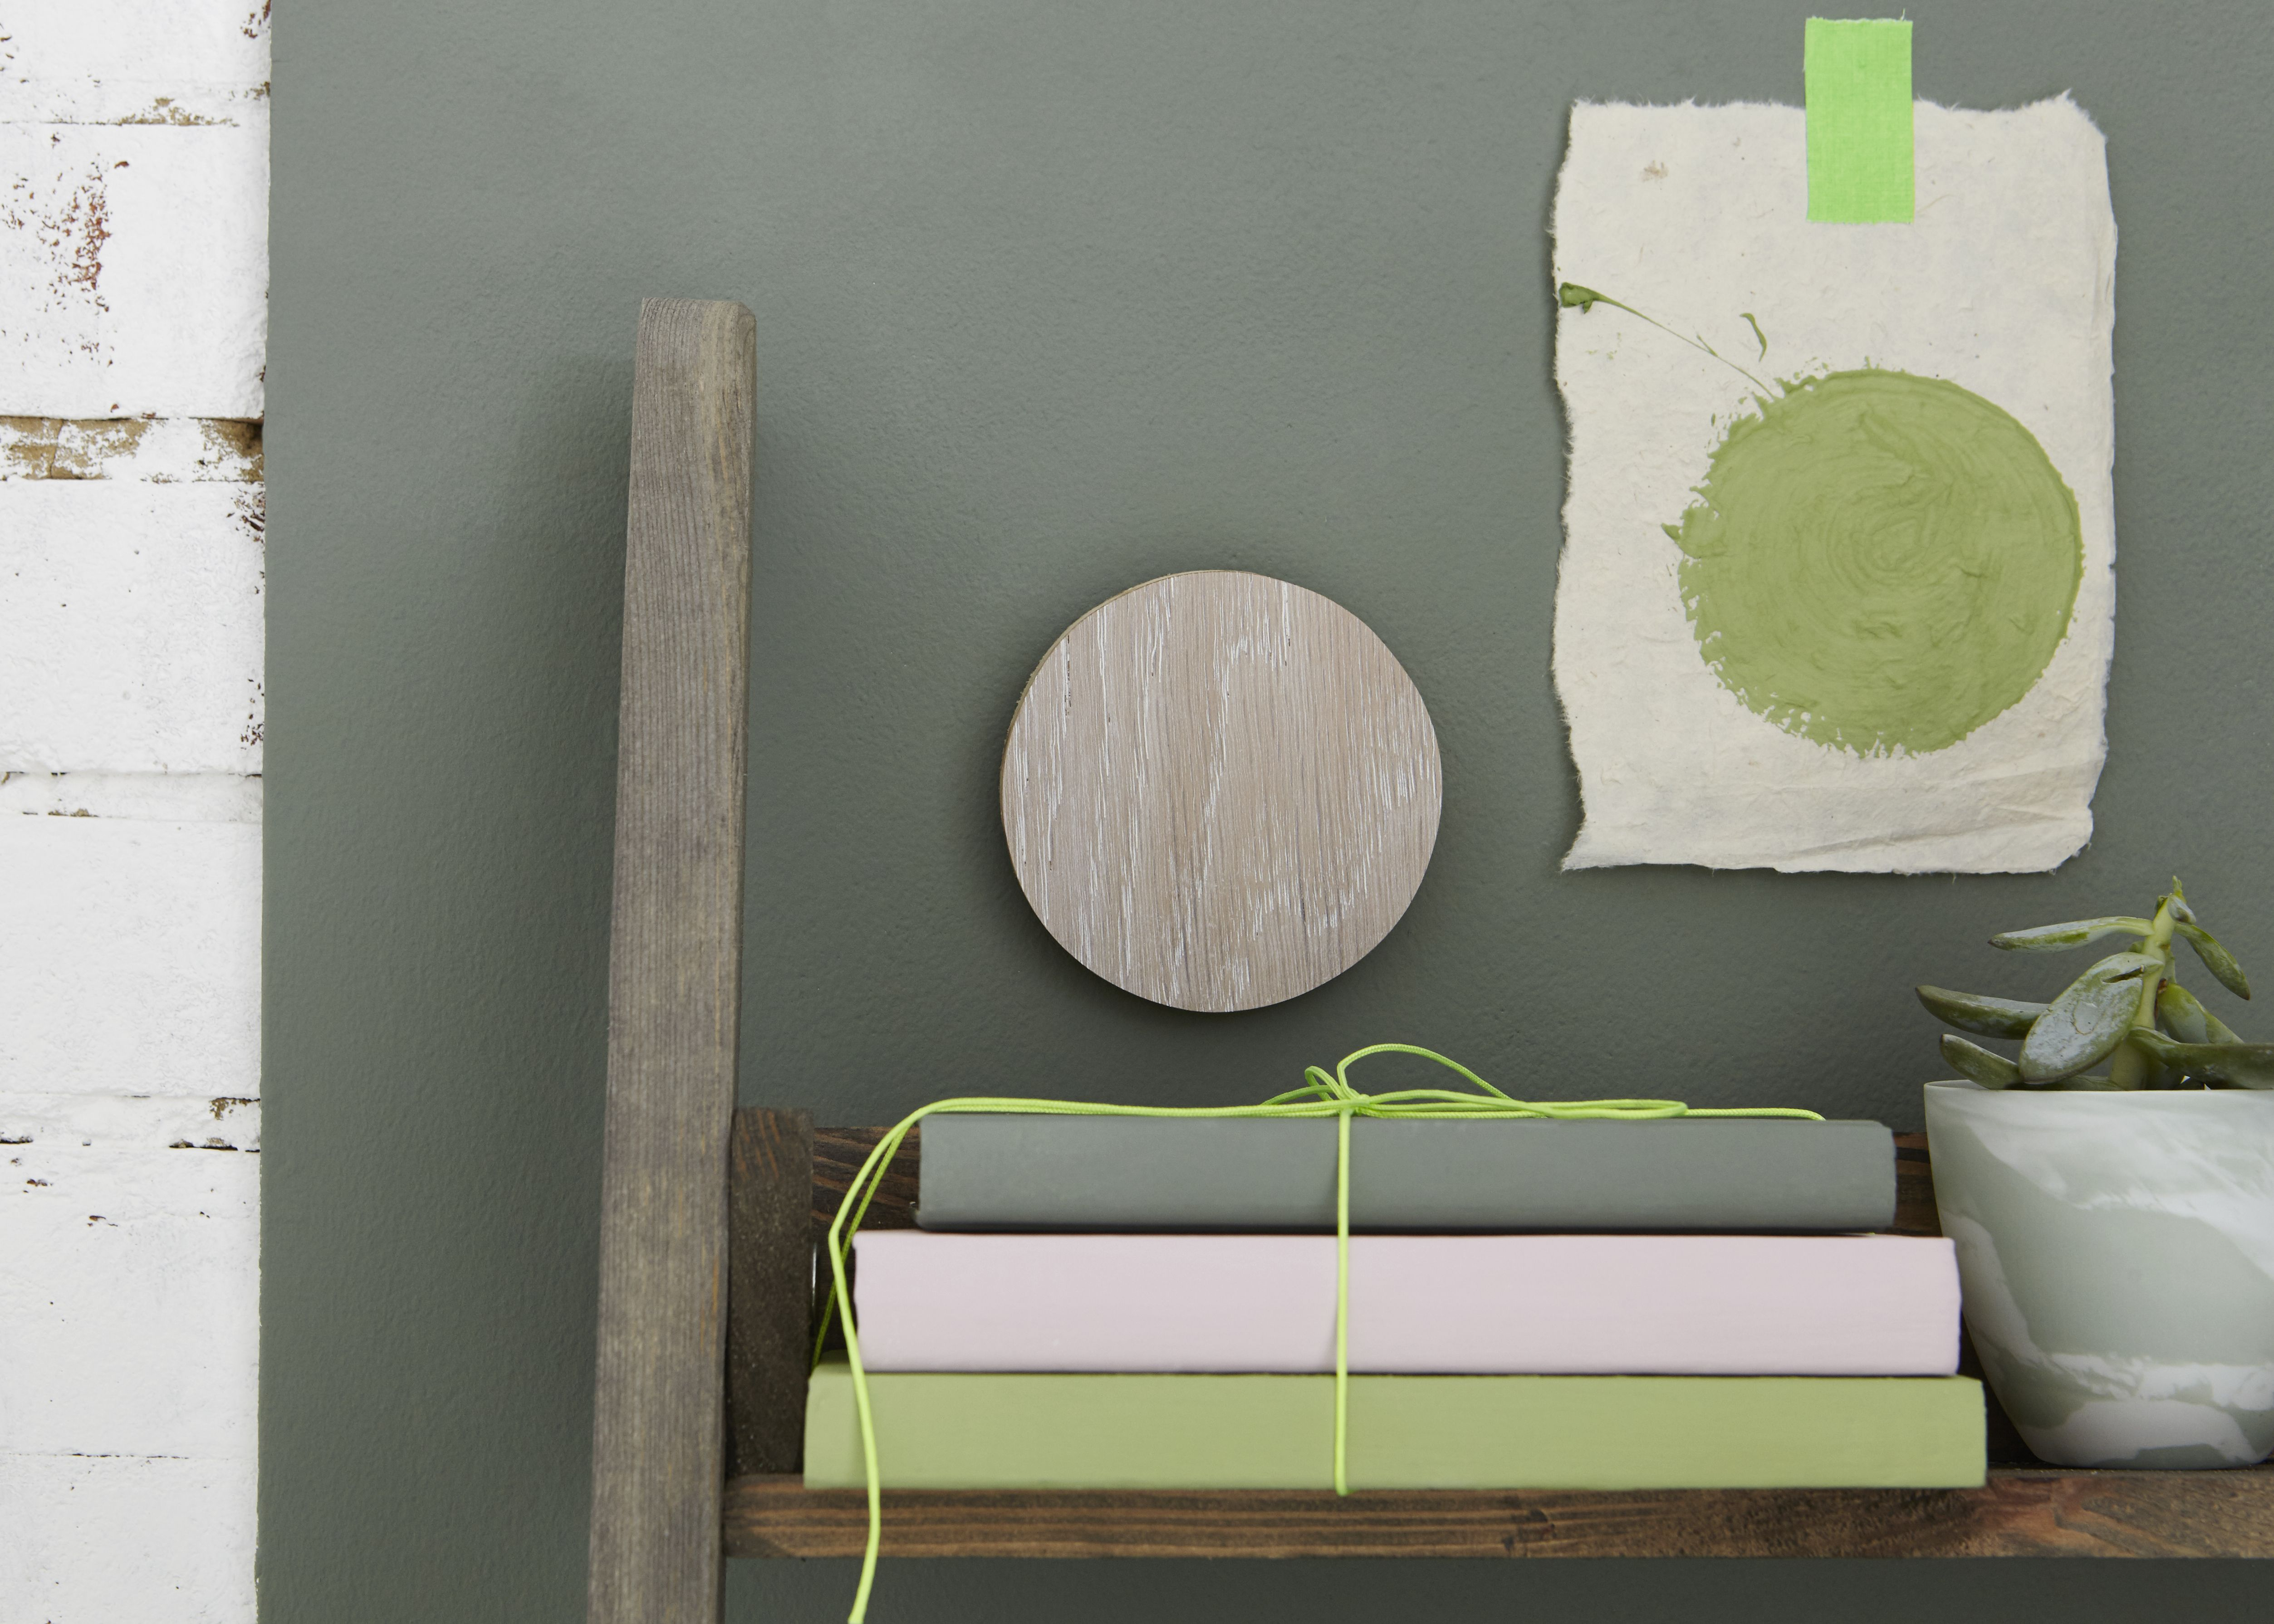 Spring Green by Earthborn paints featuring Secret Room Claypaint ...